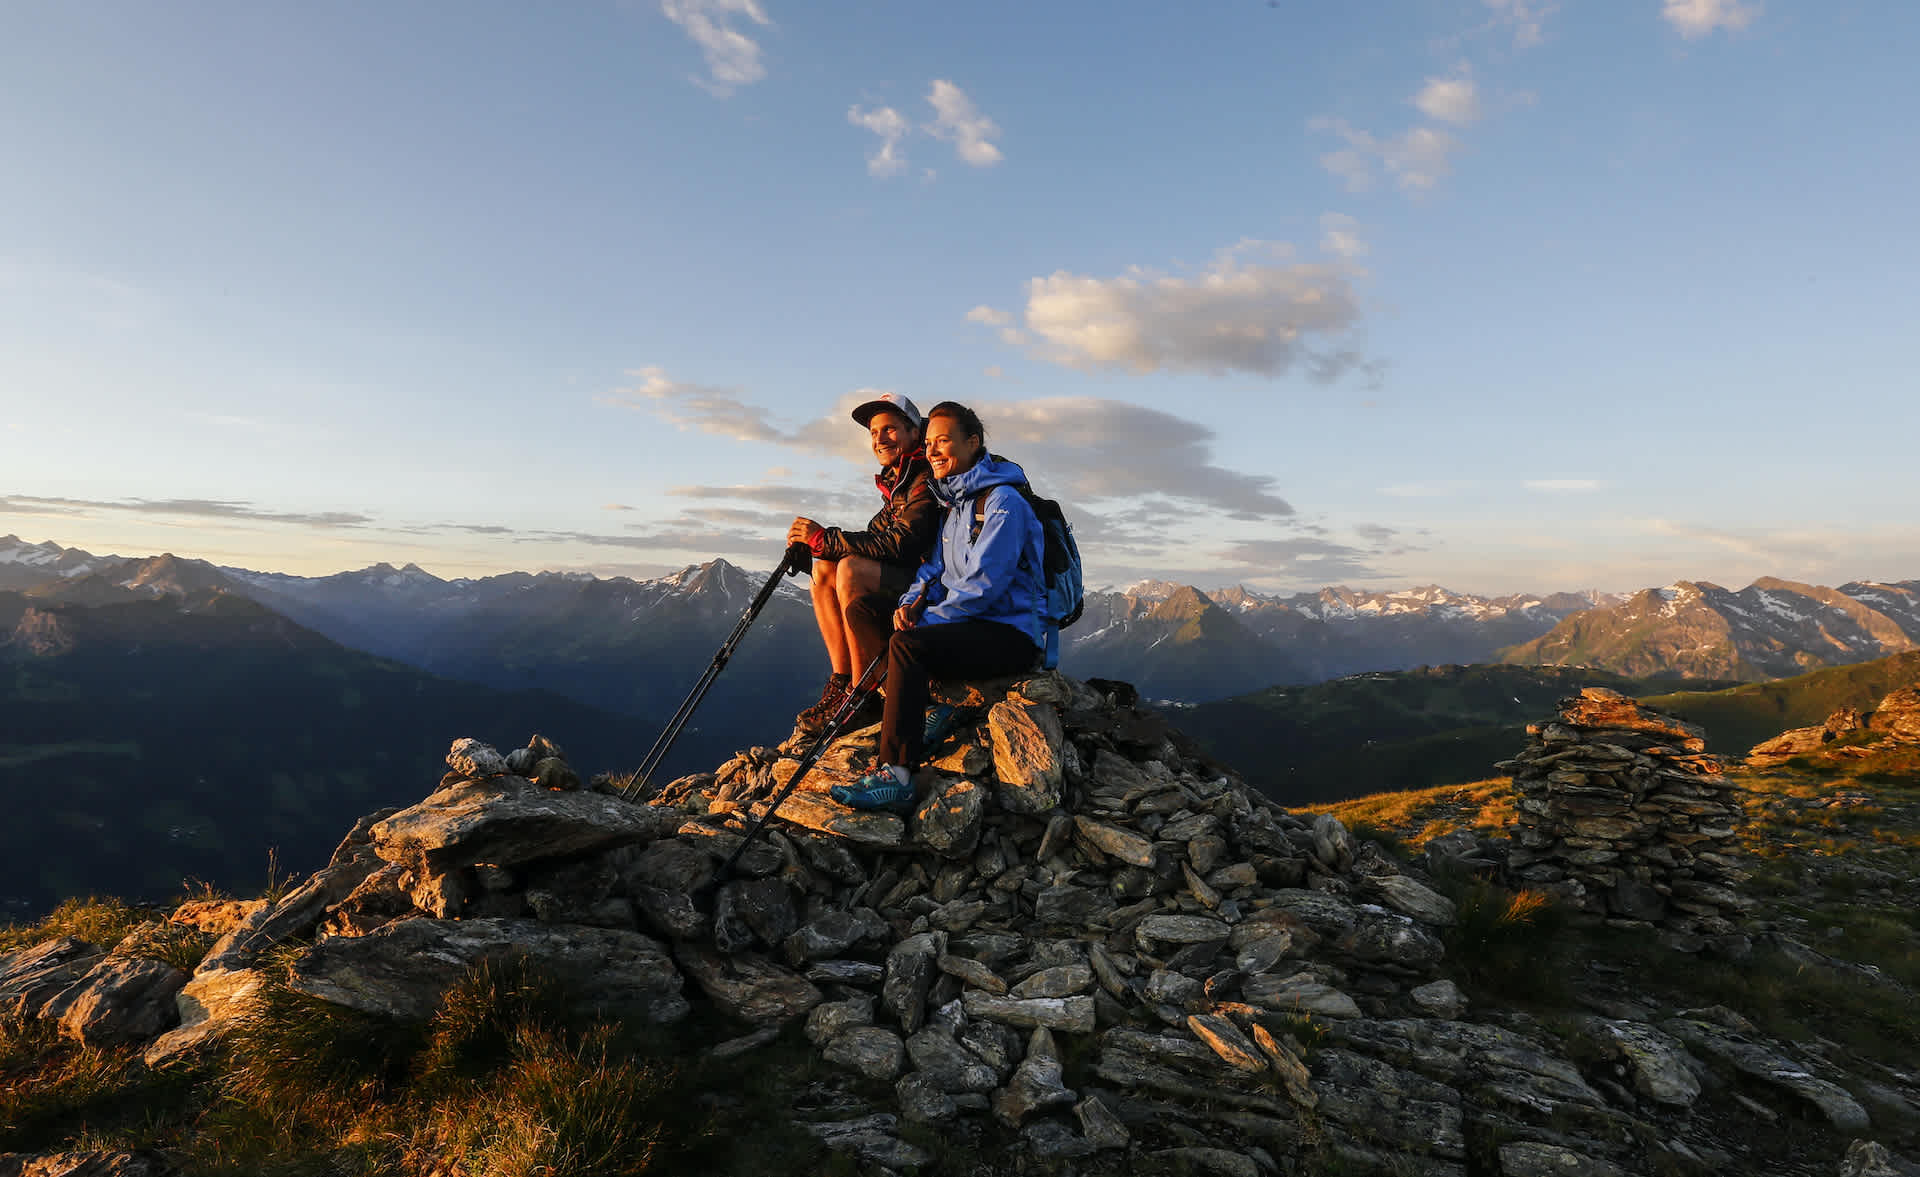 Enjoy the sunrise in the Zillertal